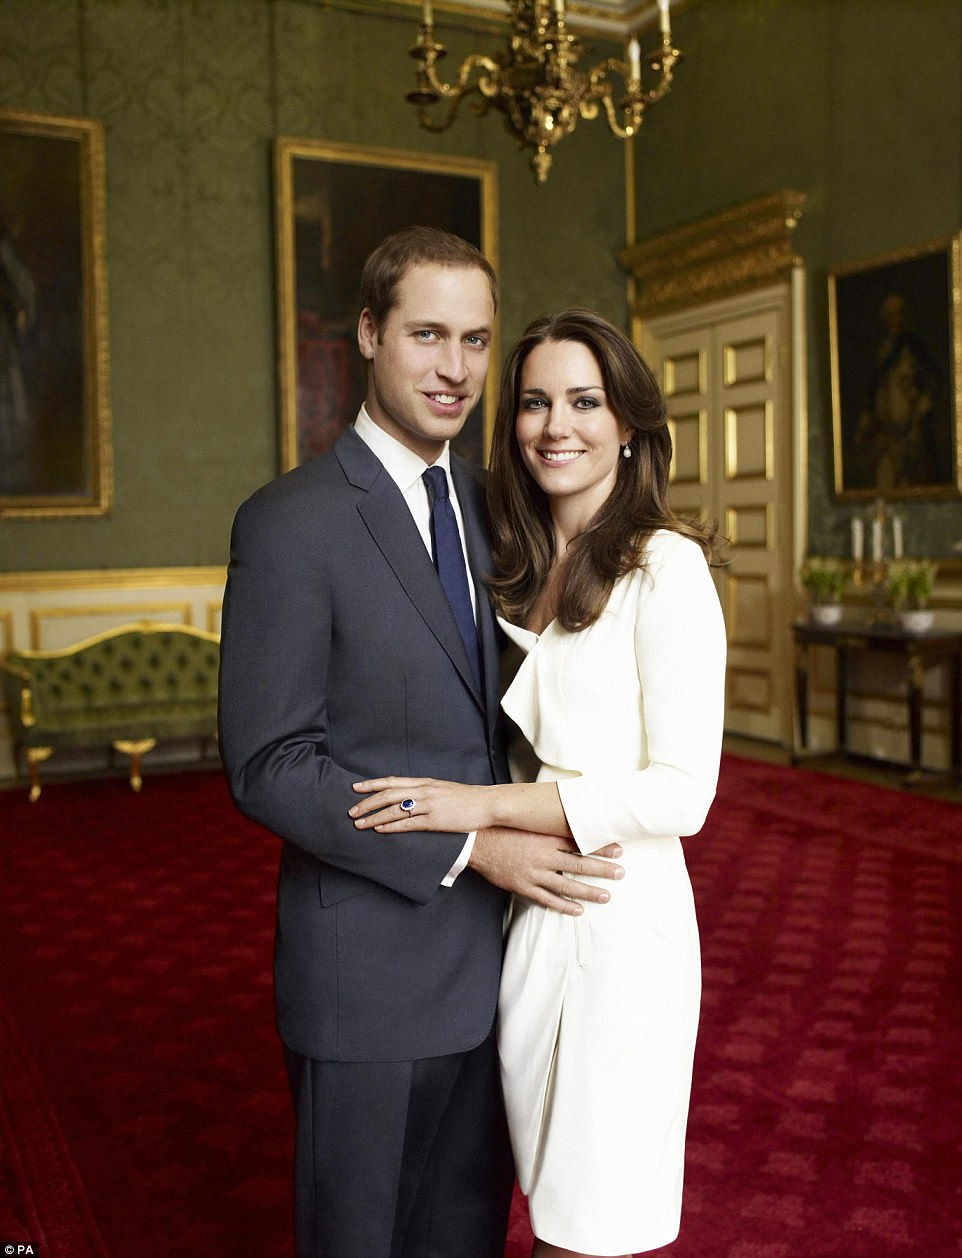 Meanwhile the the Duchess of Cambridge opted for a dress from high street retailer Reiss as she and William posed in the Council Champer in the State Apartment of St James's Palace